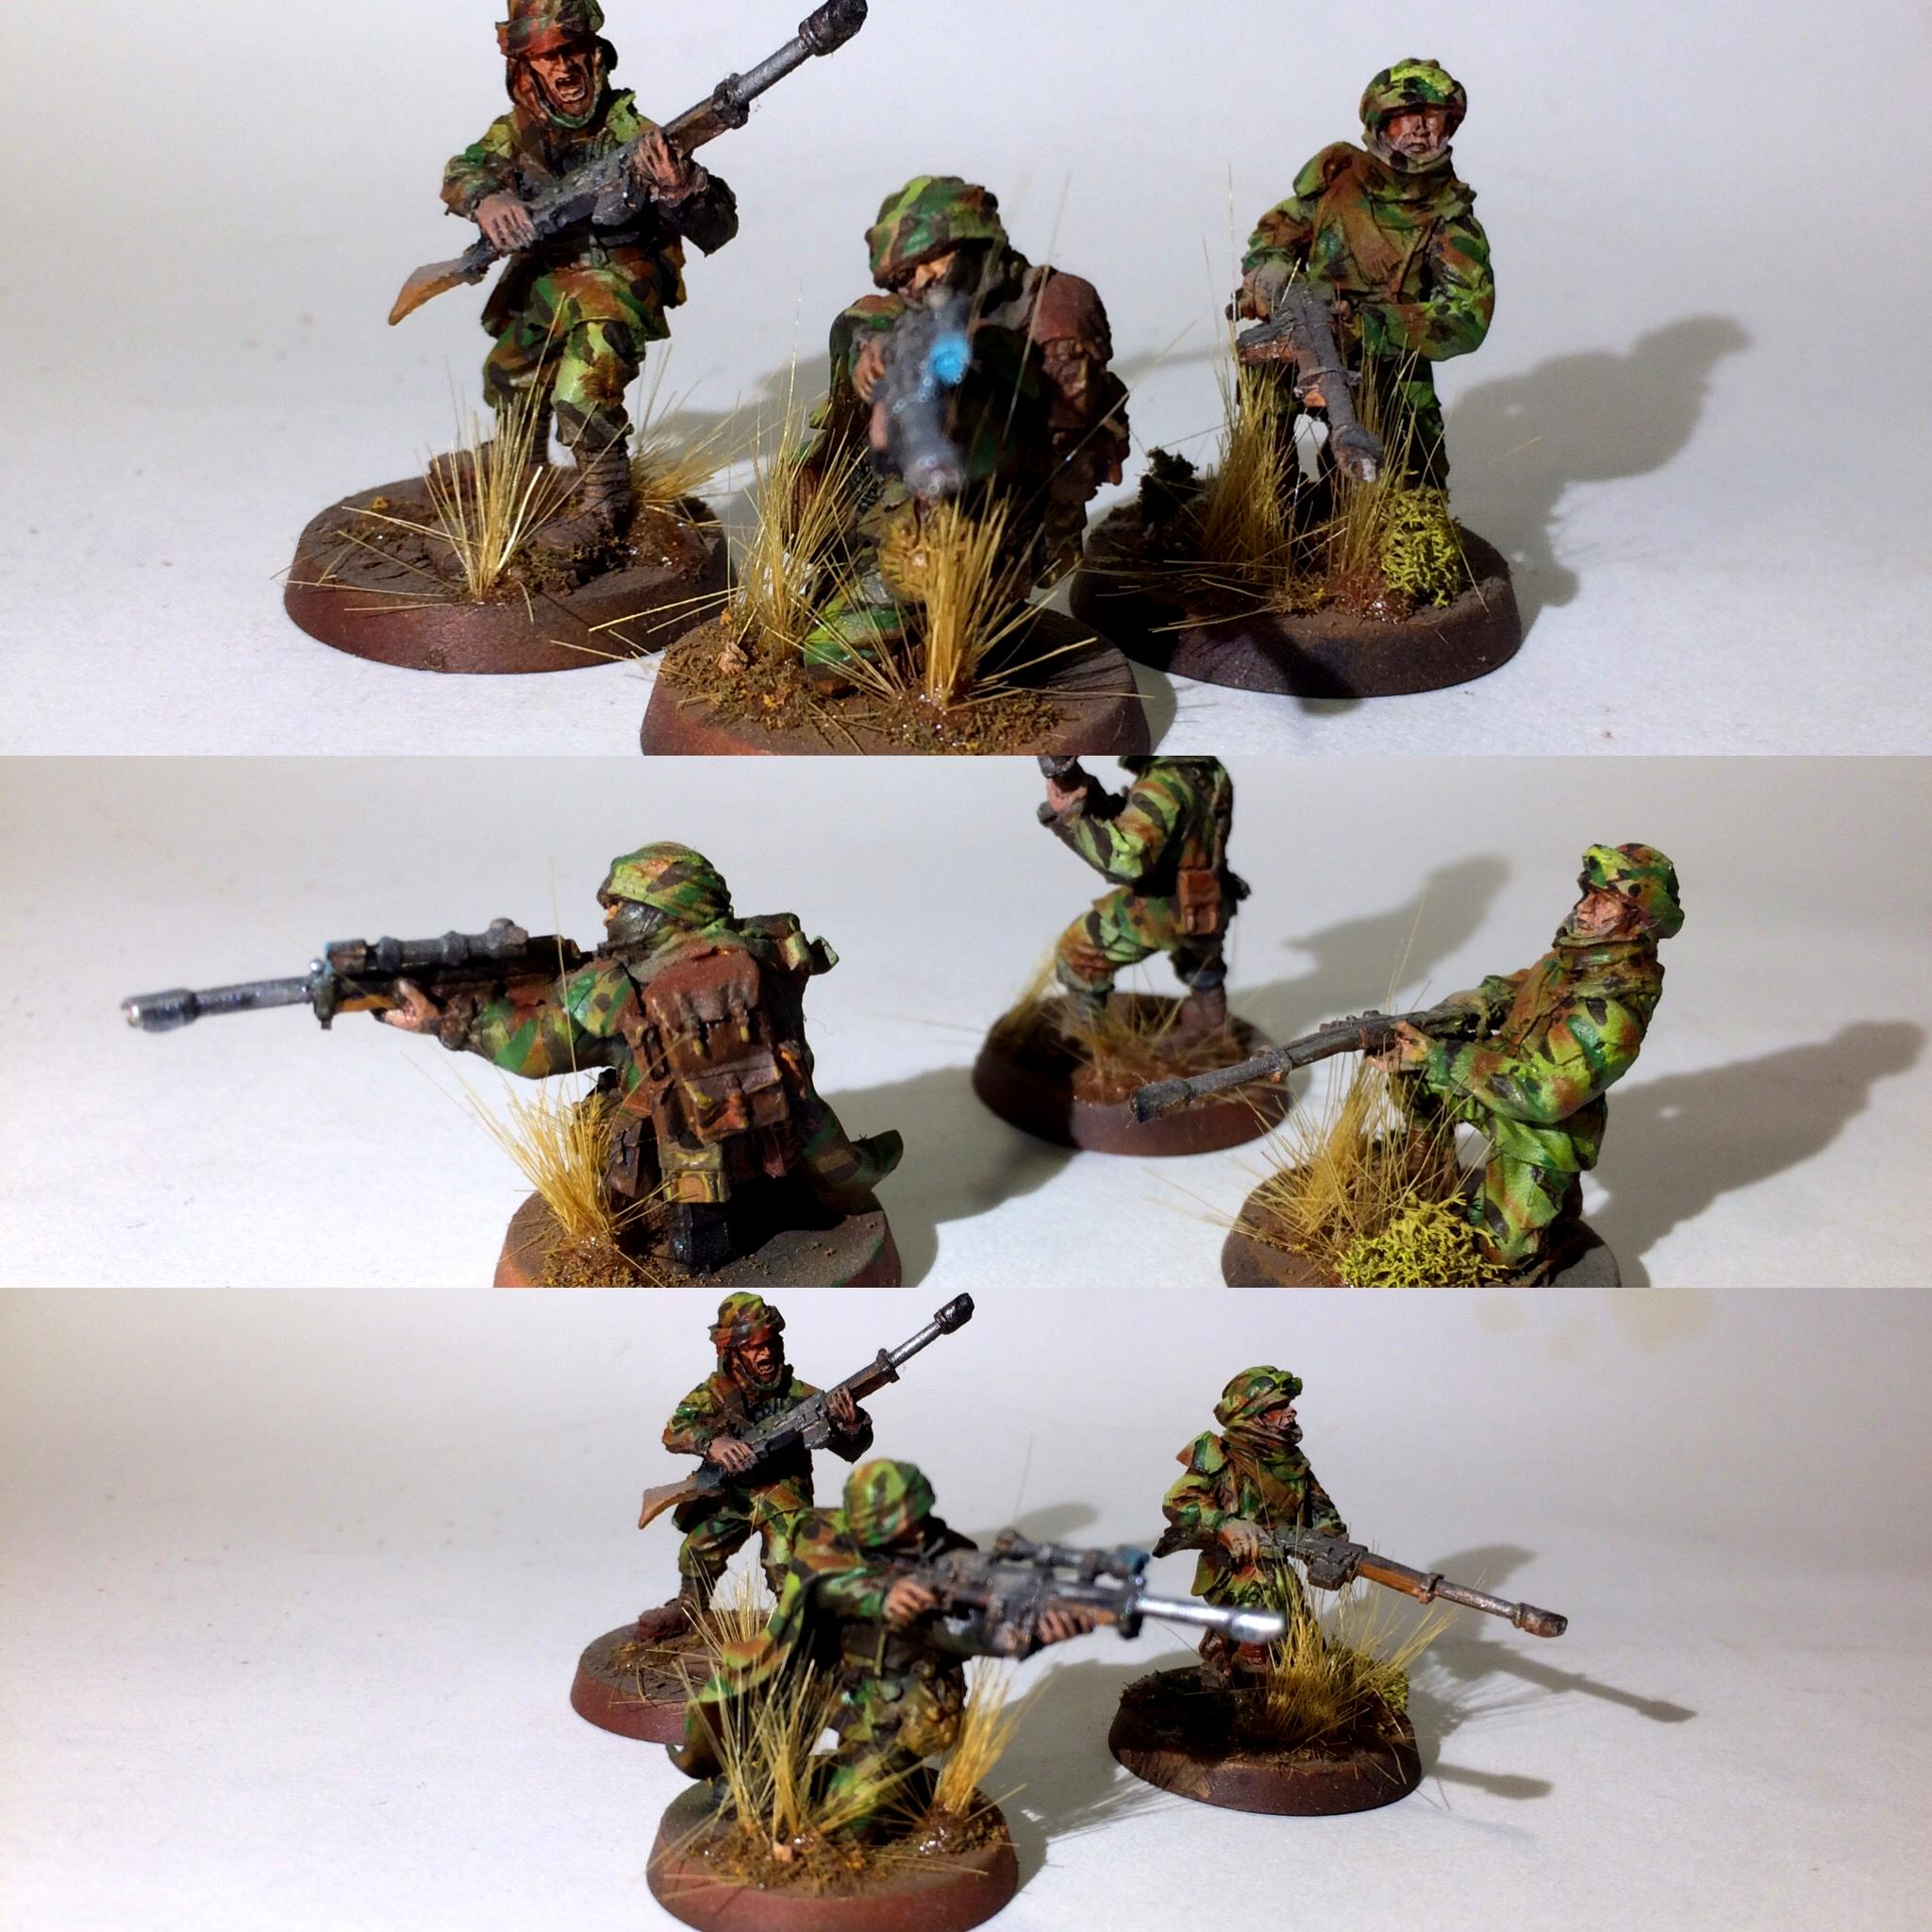 Airbrushed, Camouflage, Death Korps of Krieg, Flocked, Forge World, Scouts, Snipers, Tallarn Desert Raiders, Warhammer 40,000